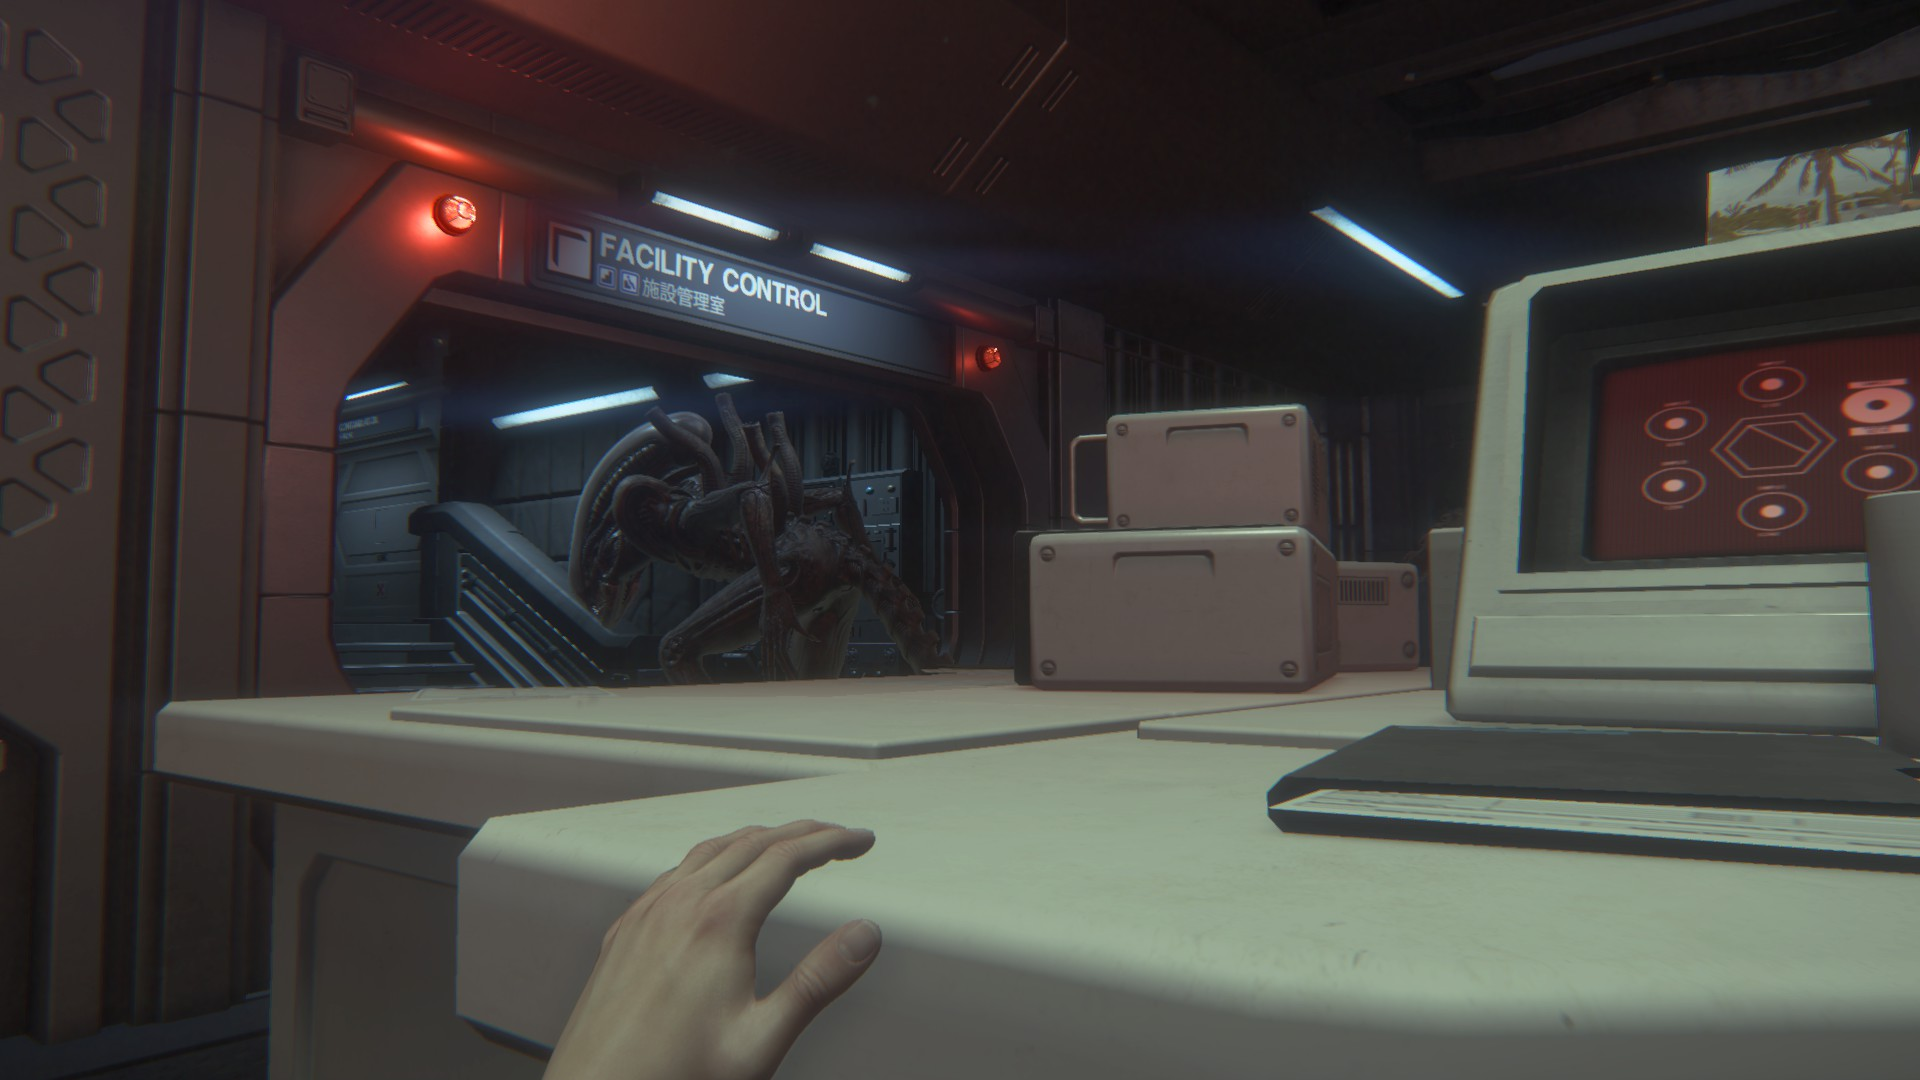 Alien Isolation 31 Images That Show Us The Terror in This